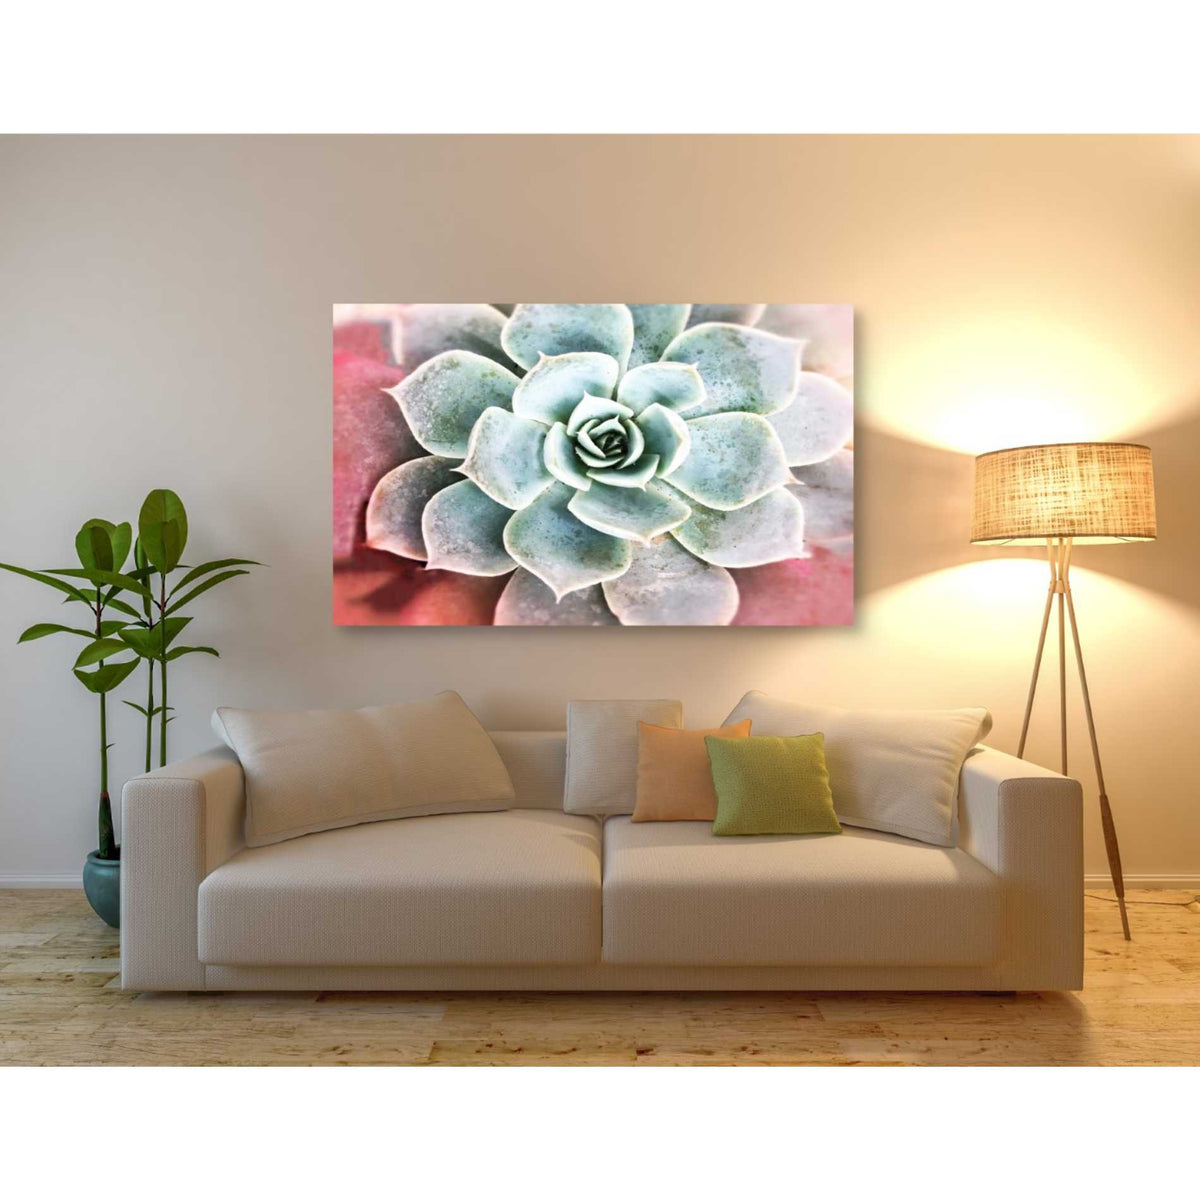 Epic Graffiti 'Succulent Garden' by Irena Orlov, Giclee Canvas Wall Art